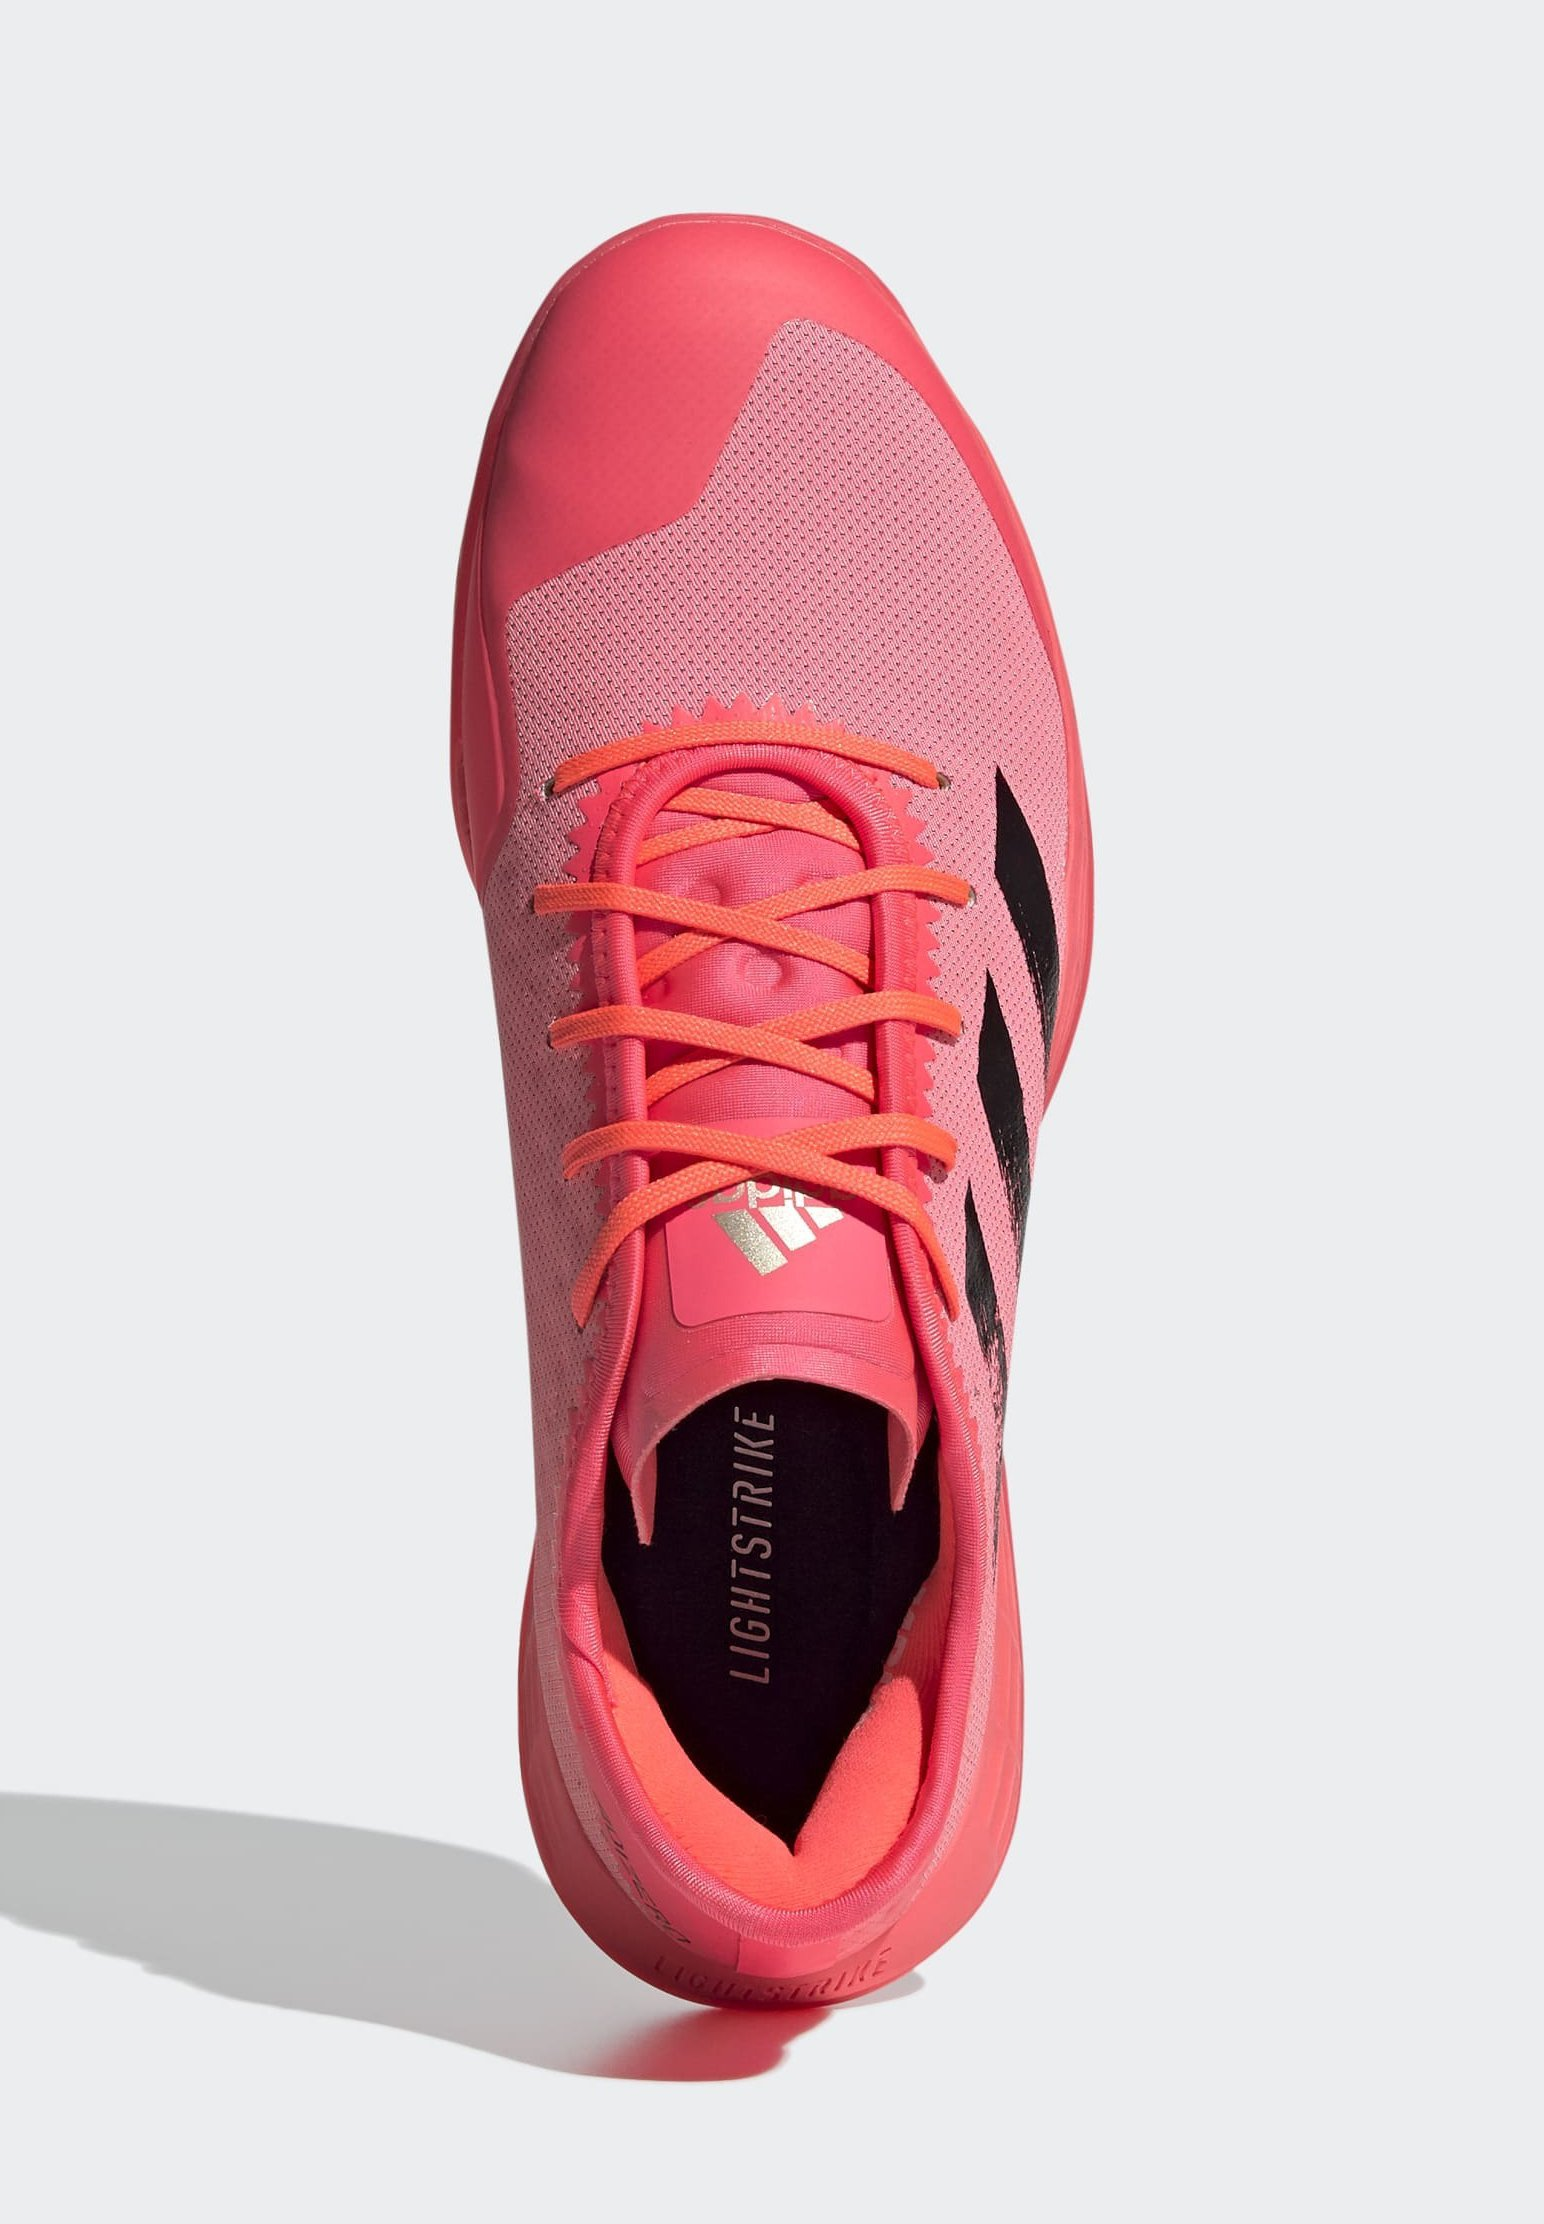 adidas Performance ADIZERO LIGHTSTRIKE INDOOR SPORTS SHOES - Handballschuh - sigpnk/cblack/coppmt/pink - Herrenschuhe sPvD7